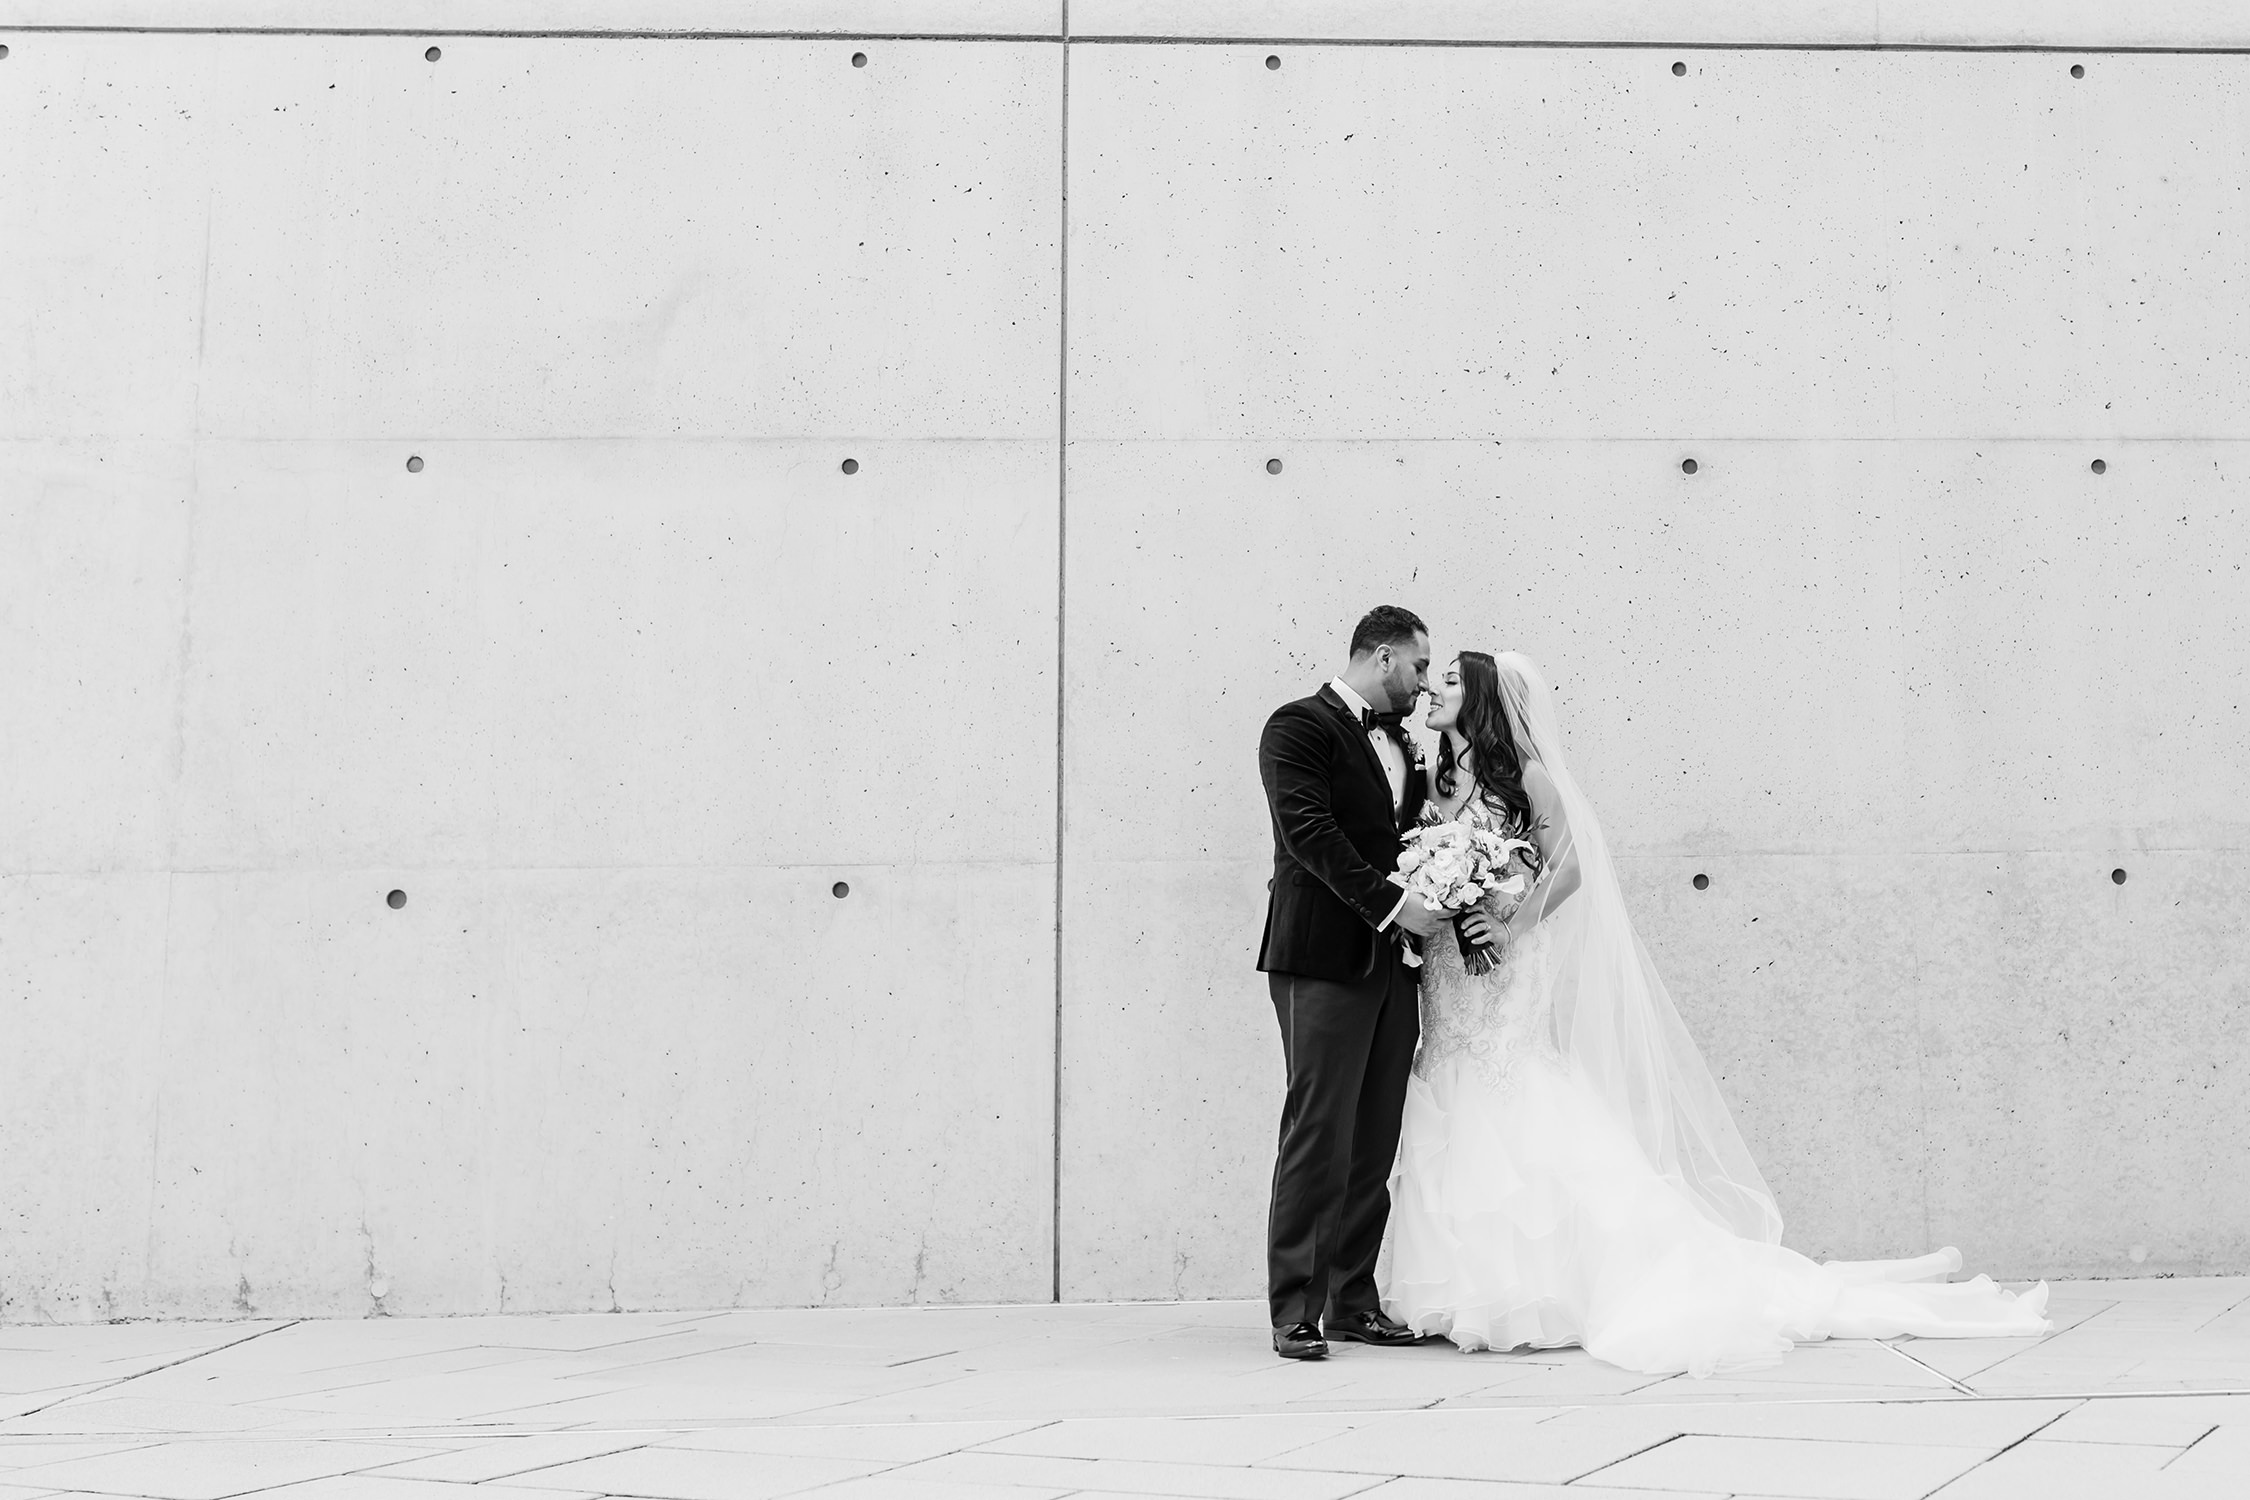 bycphotography cathedral of our lady of the angels downtown los angeles wedding